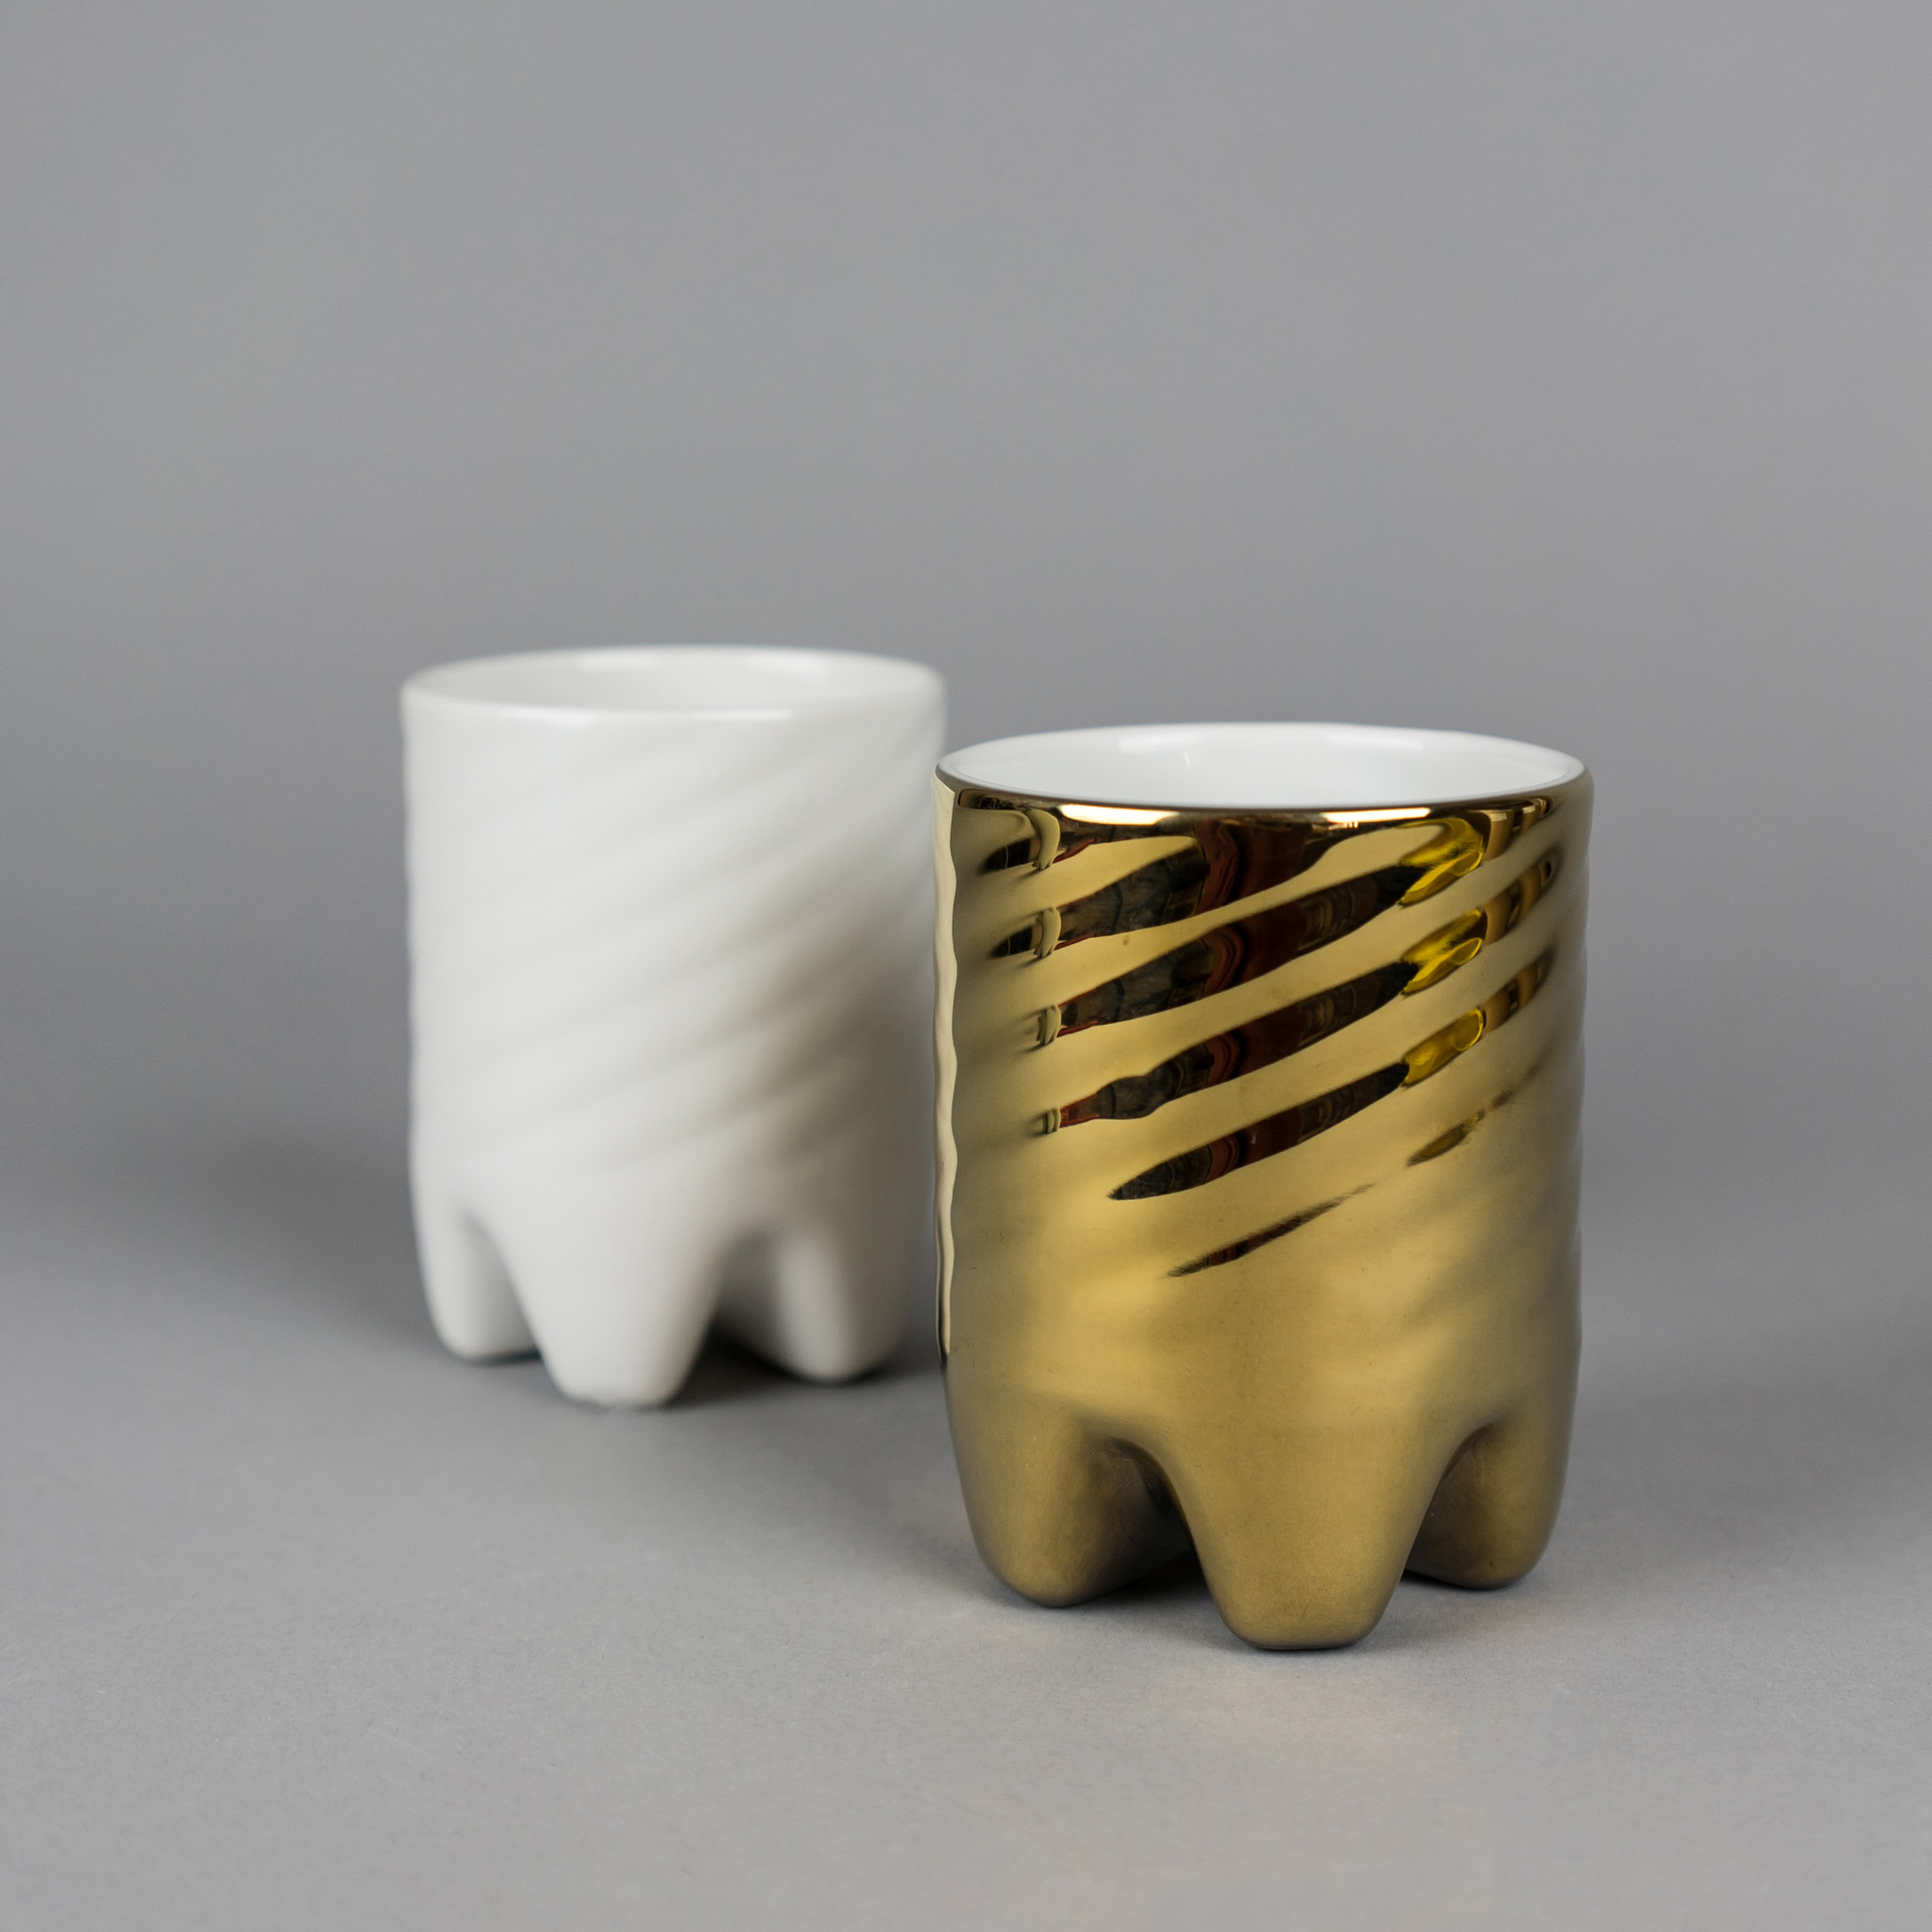 Goodwater cup by Qubus gold